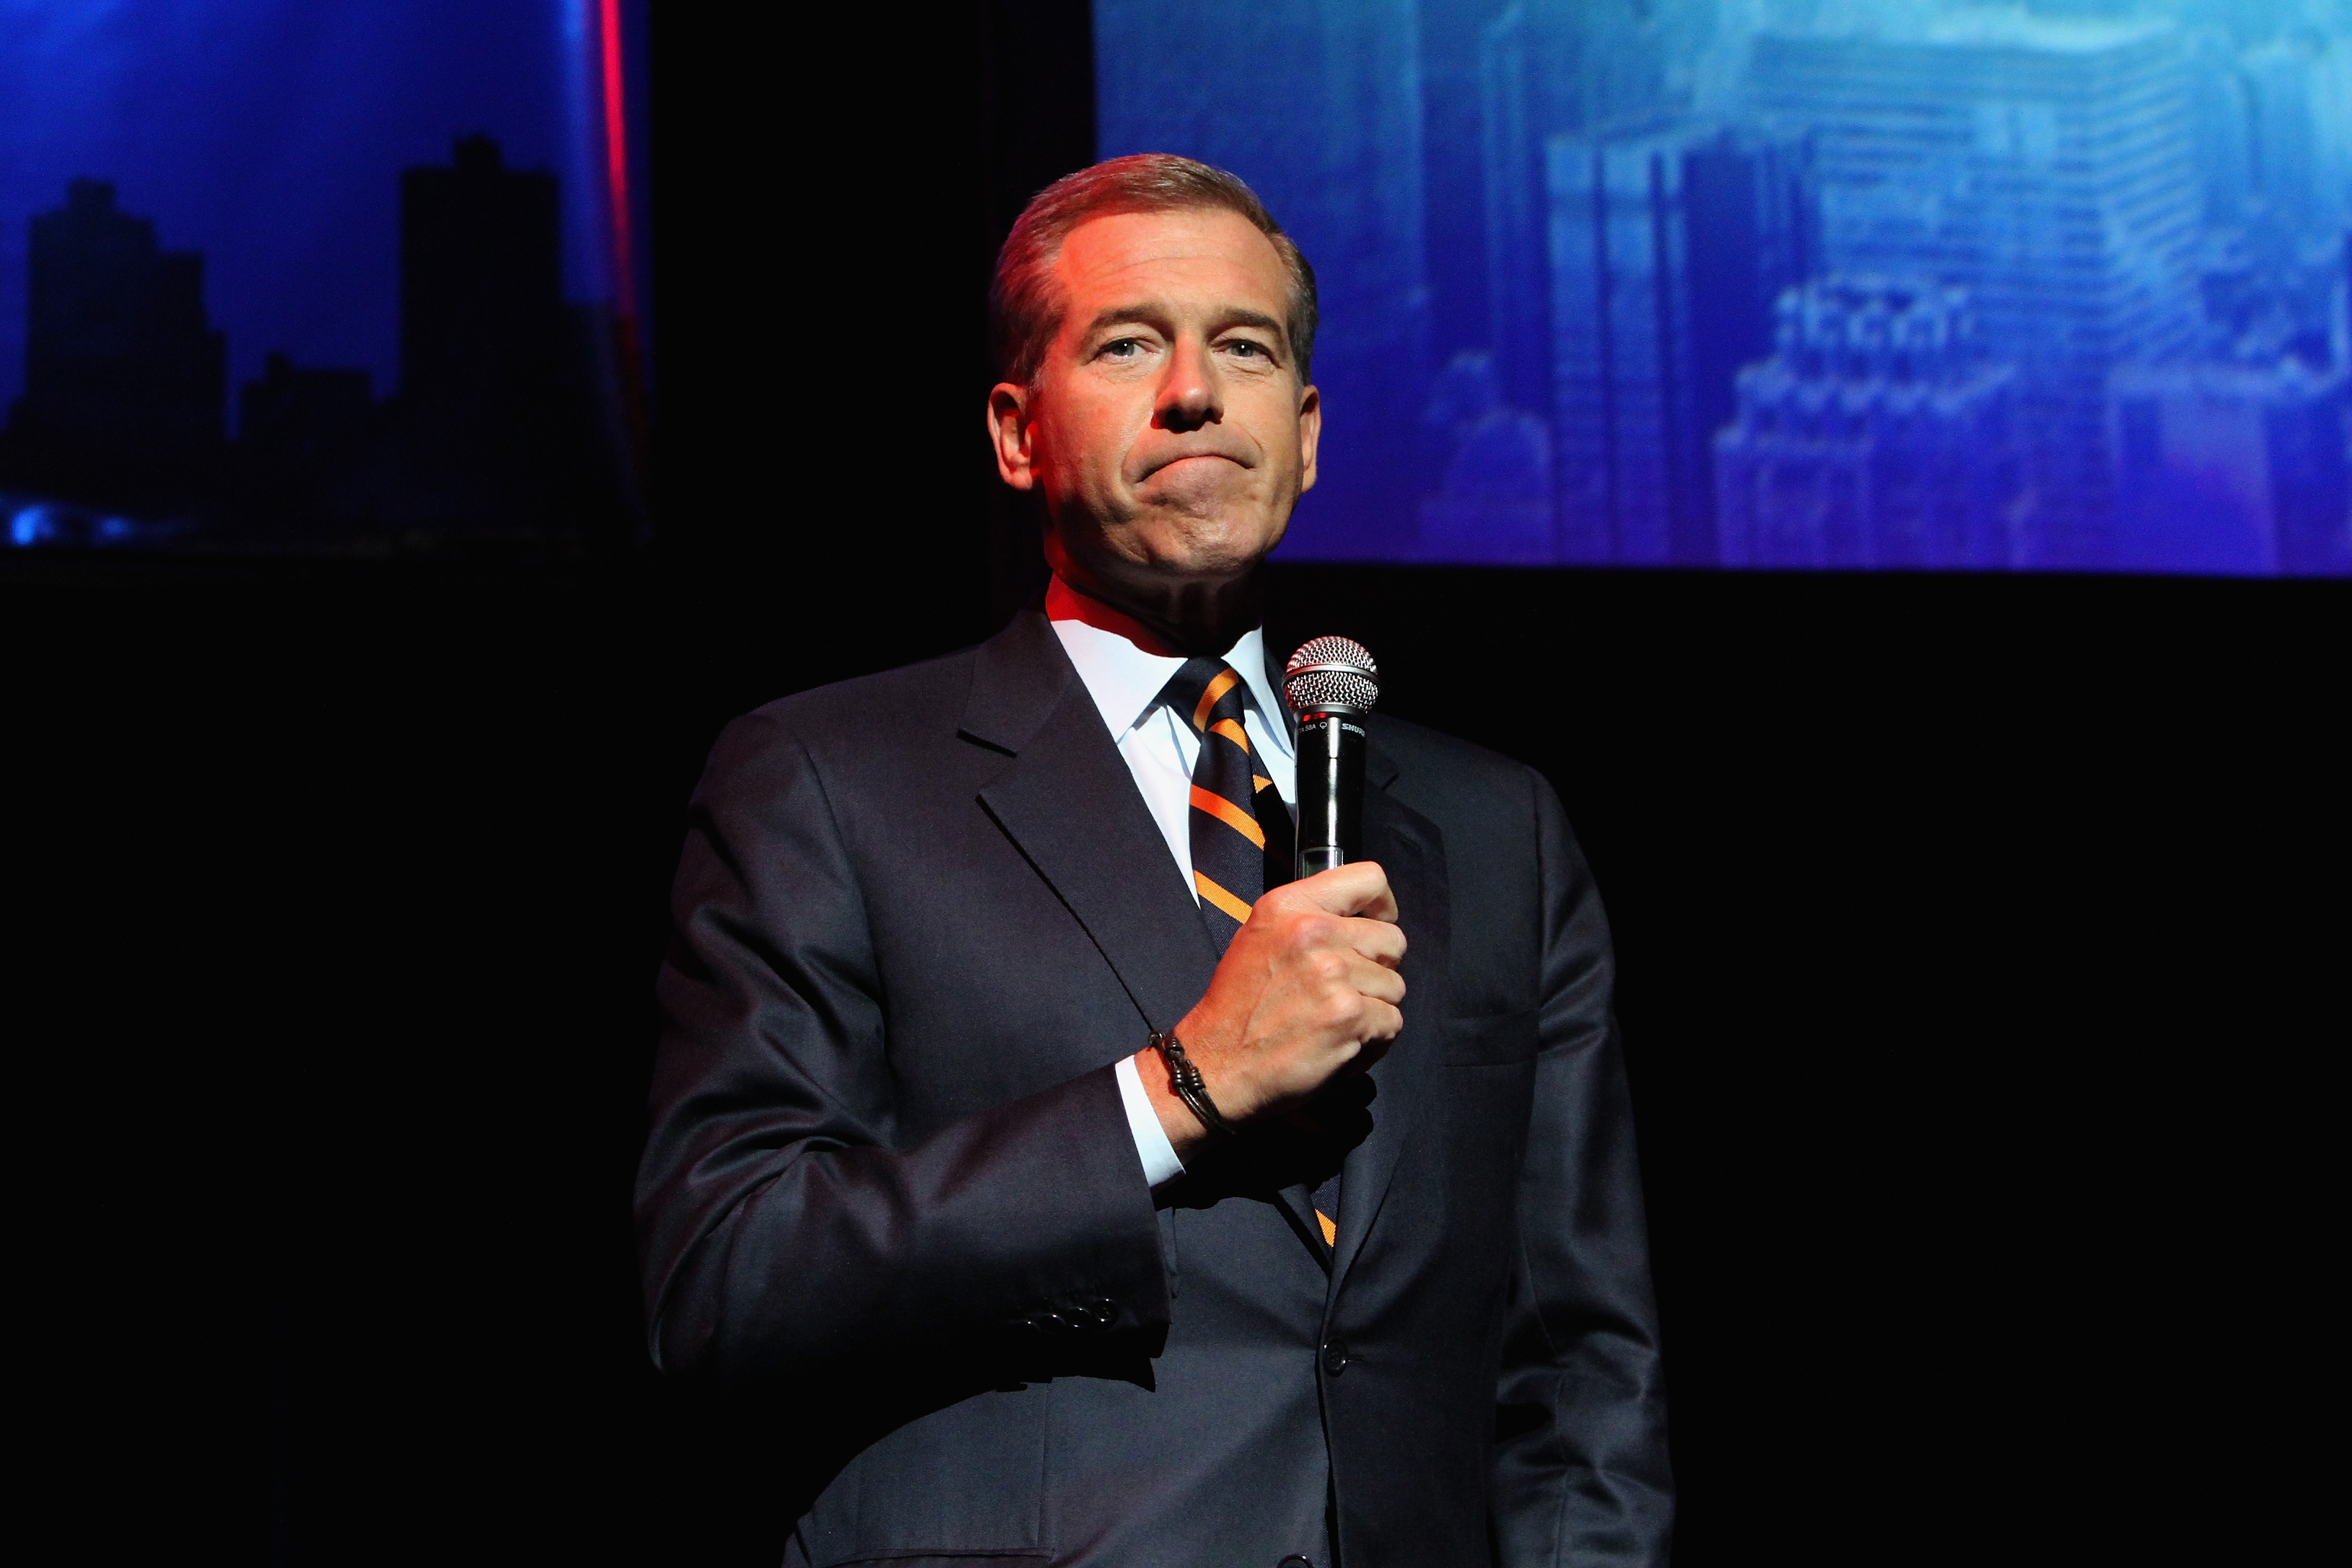 NBC News Anchor Brian Williams speaks onstage at The New York Comedy Festival and The Bob Woodruff Foundation present the 8th Annual Stand Up For Heroes Event at Madison Square Garden on Nov. 5, 2014 in New York City.